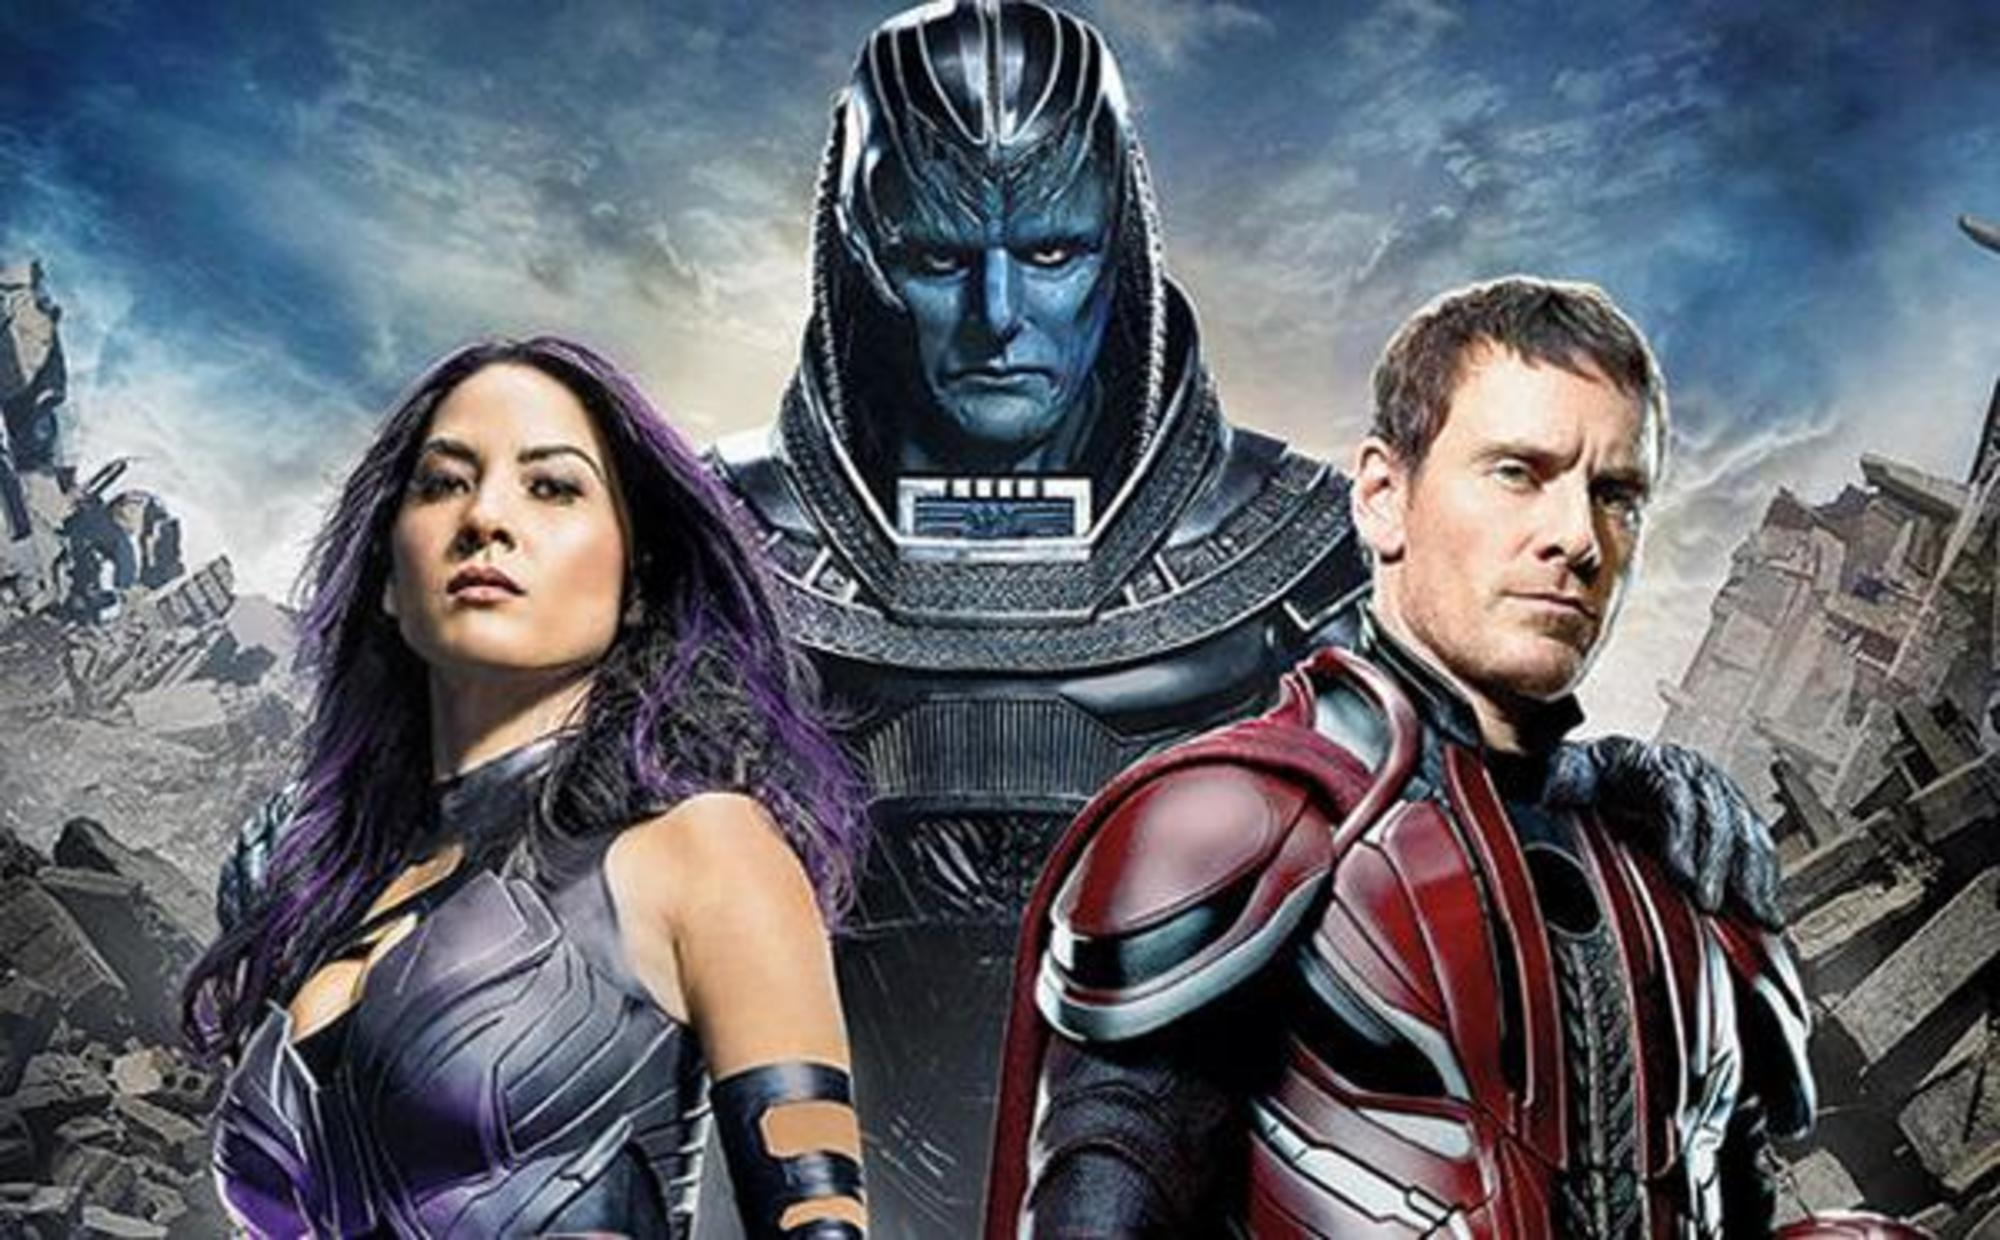 x-men: apocalypse wallpapers high resolution and quality download